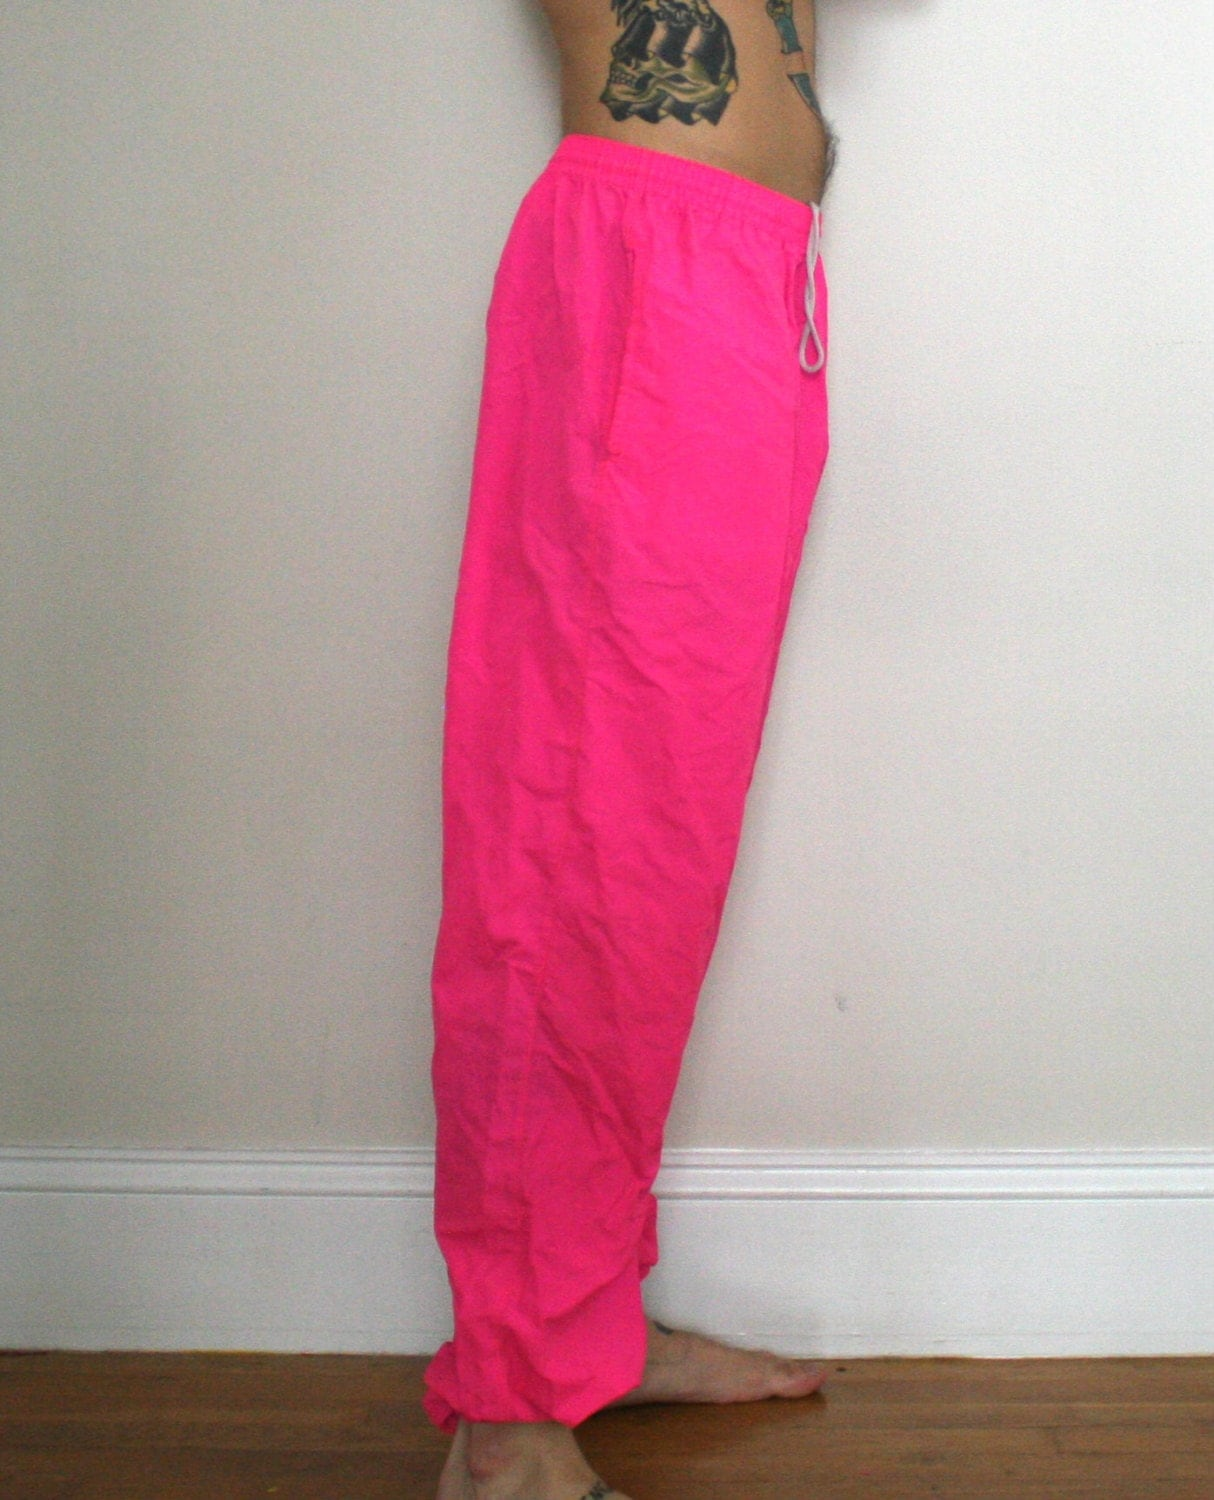 Neon Sweatpants ($ - $): 30 of 49 items - Shop Neon Sweatpants from ALL your favorite stores & find HUGE SAVINGS up to 80% off Neon Sweatpants, including GREAT DEALS like everest Bottoms   Black And Neon Yellow Sweatpants!   Color: Black/Yellow   Size: 12b ($). Boys Addidas Gray And Neon Yellow Sweat Pants.